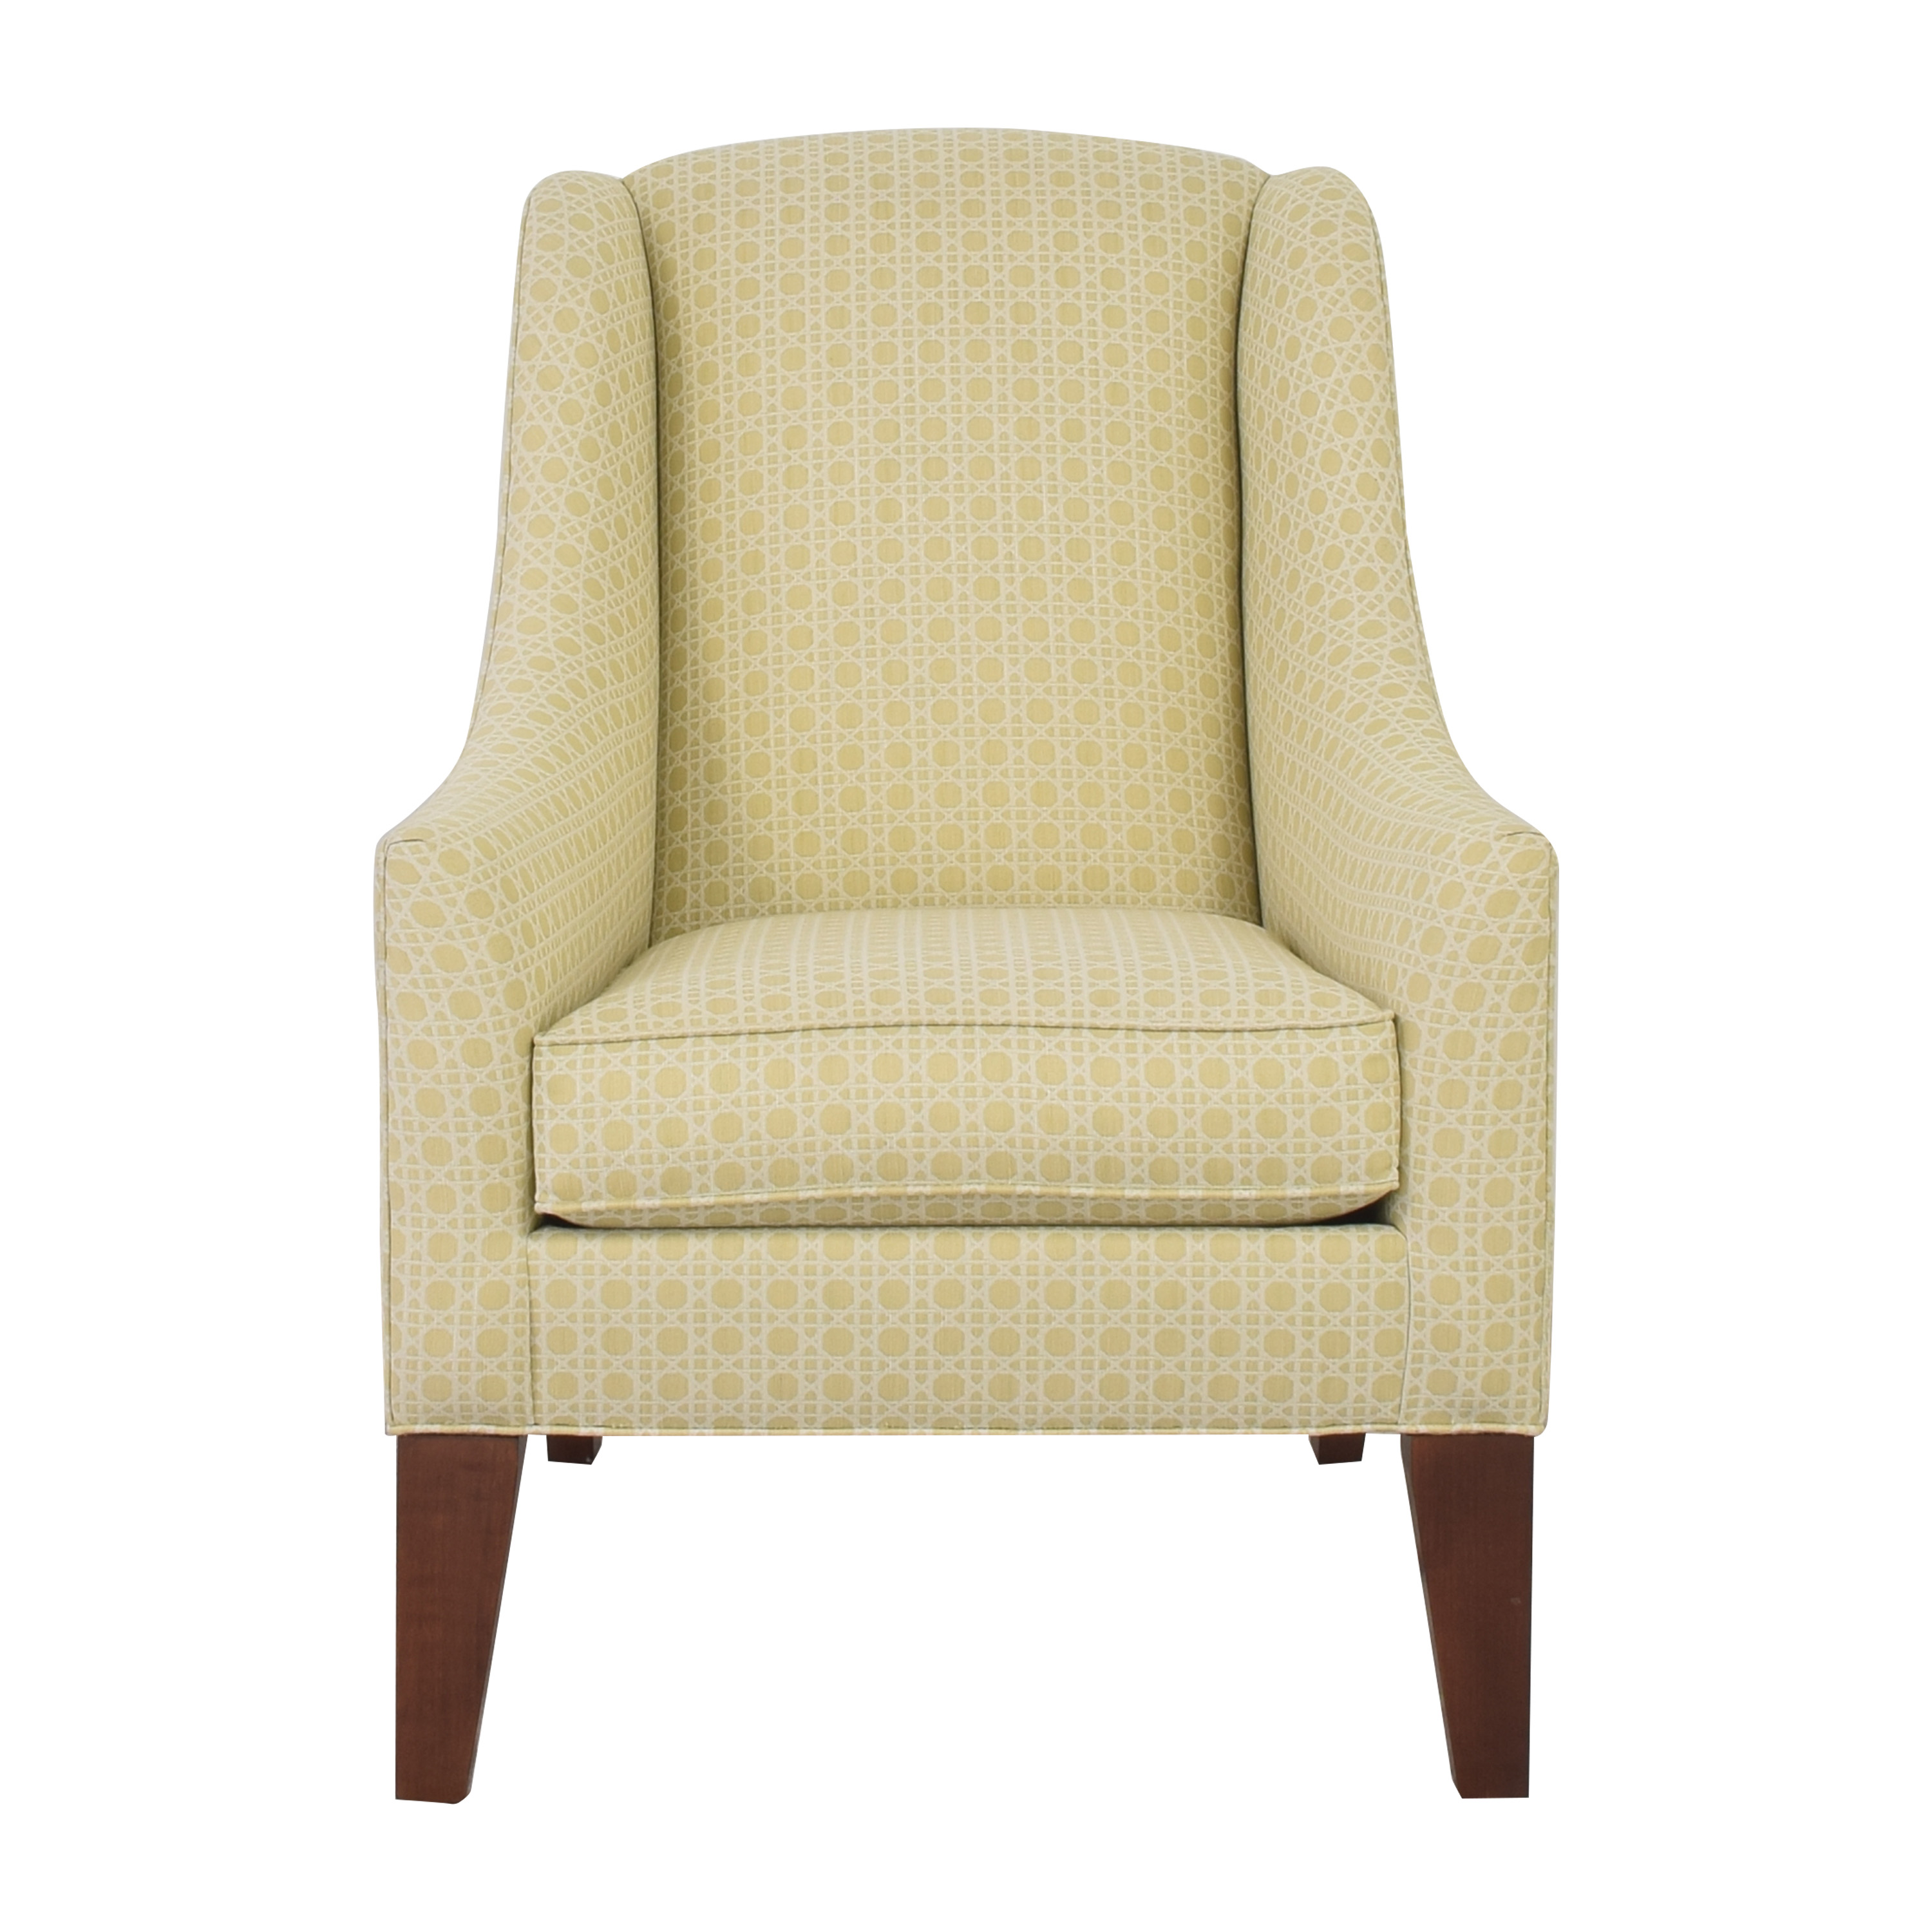 Ethan Allen Hartwell Chair / Accent Chairs